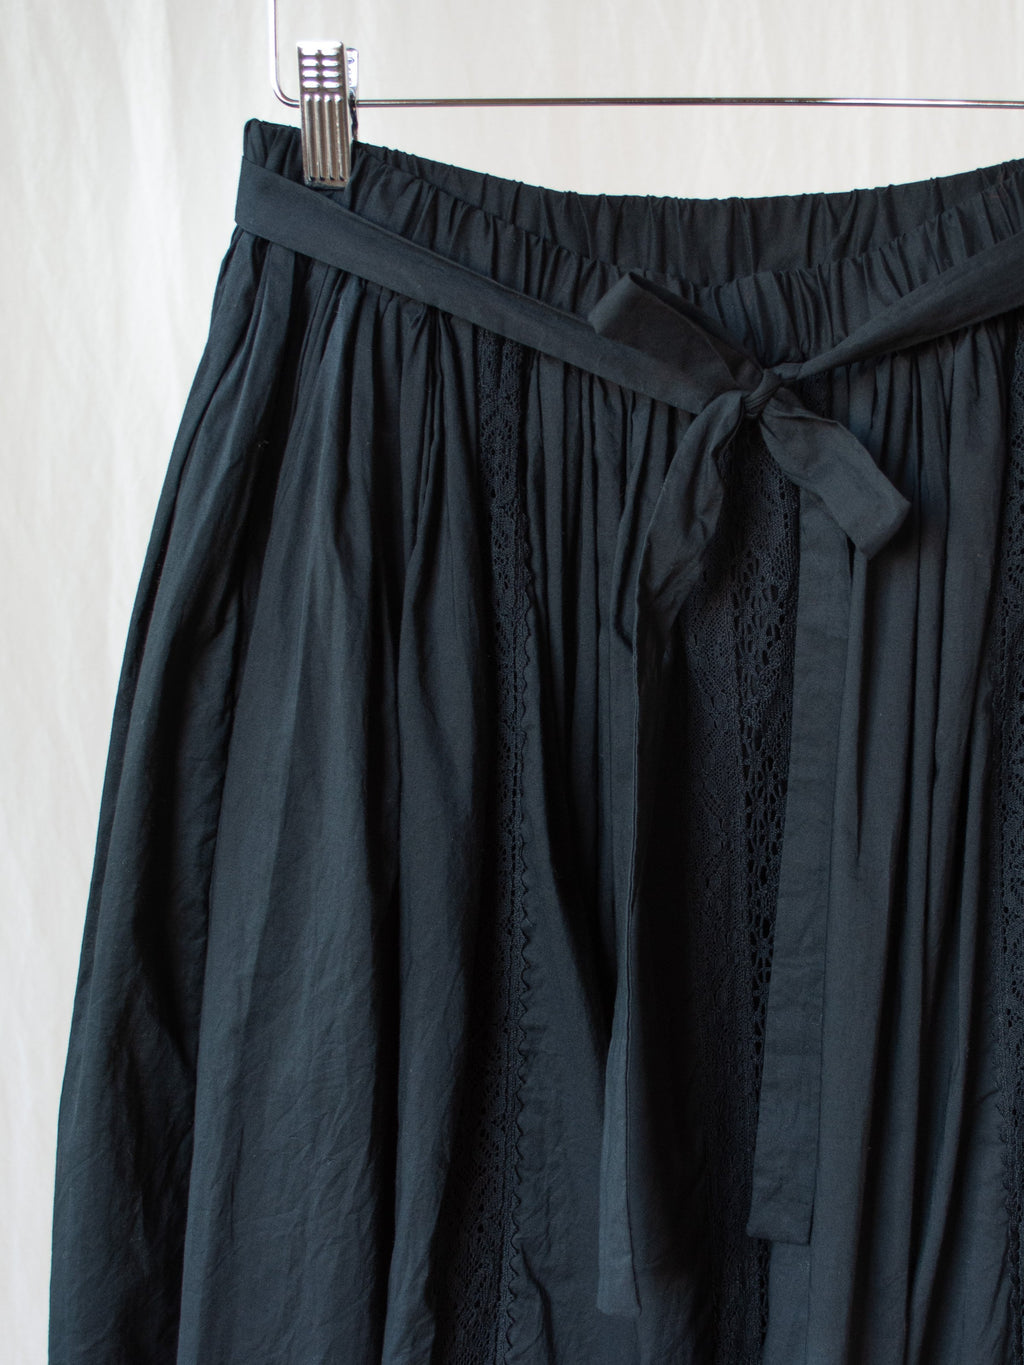 Namu Shop - Veritecoeur Pleated Lace Skirt